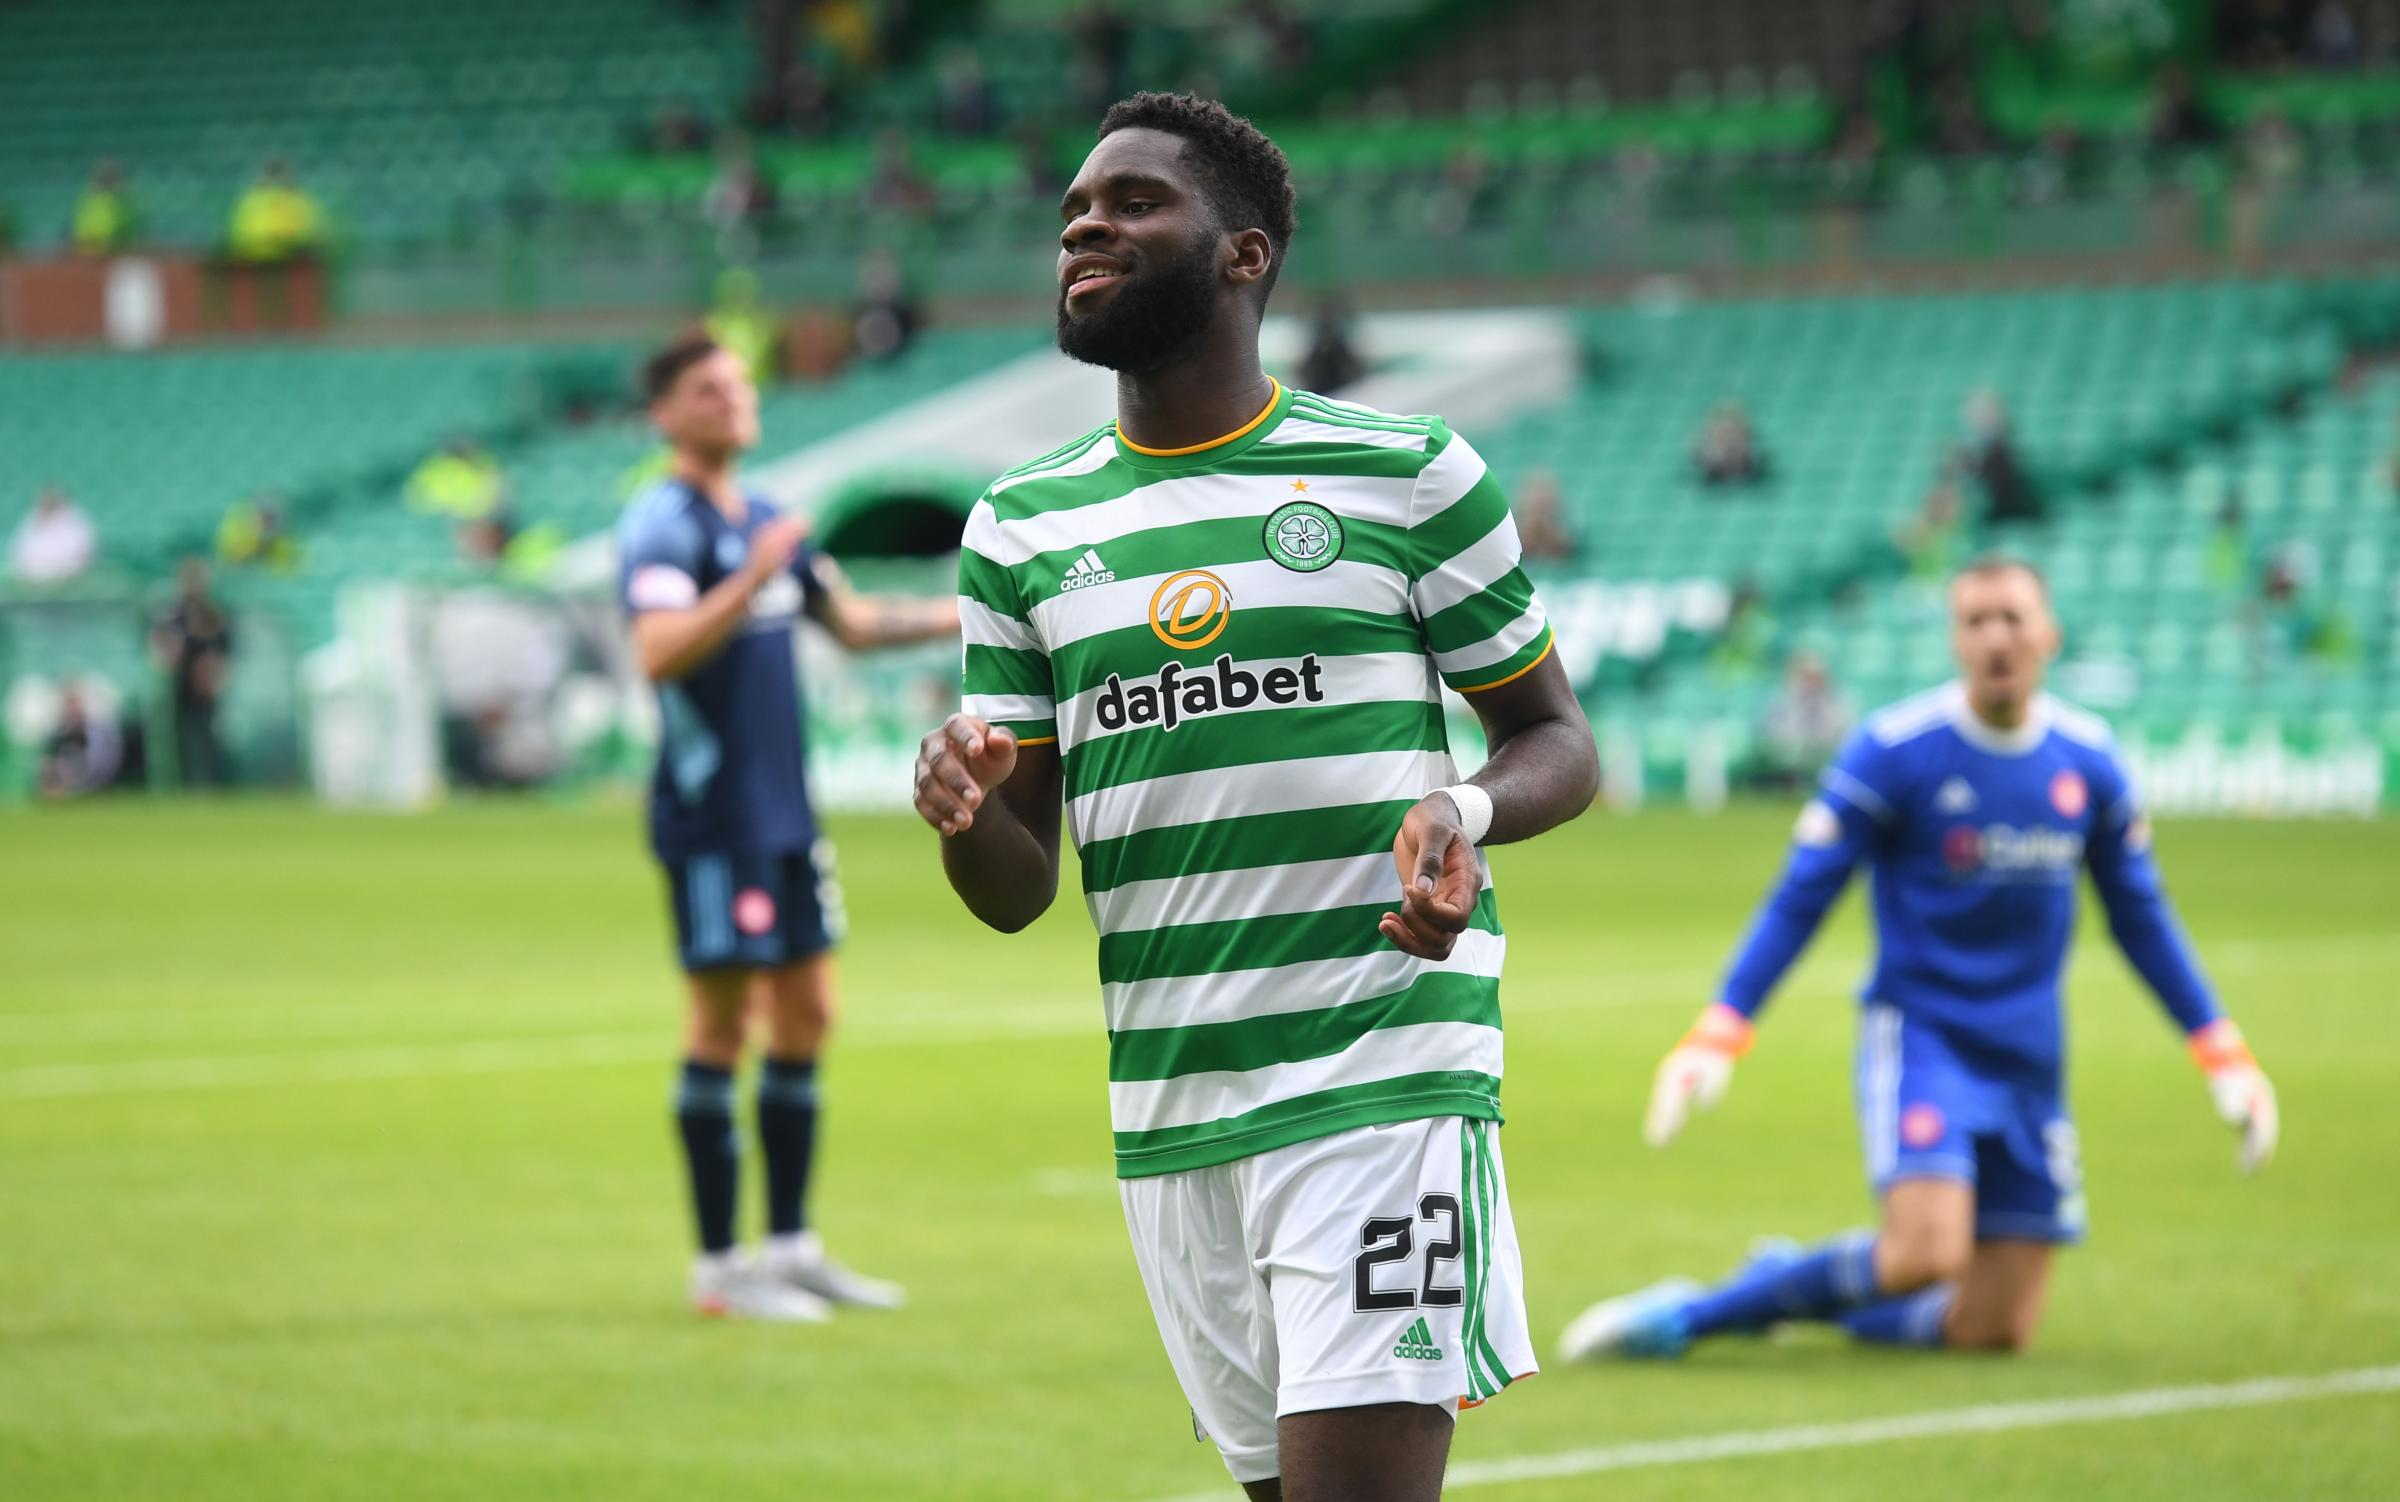 Celtic 5 Hamilton 1: Three things we learned as Odsonne Edouard shines on flag day